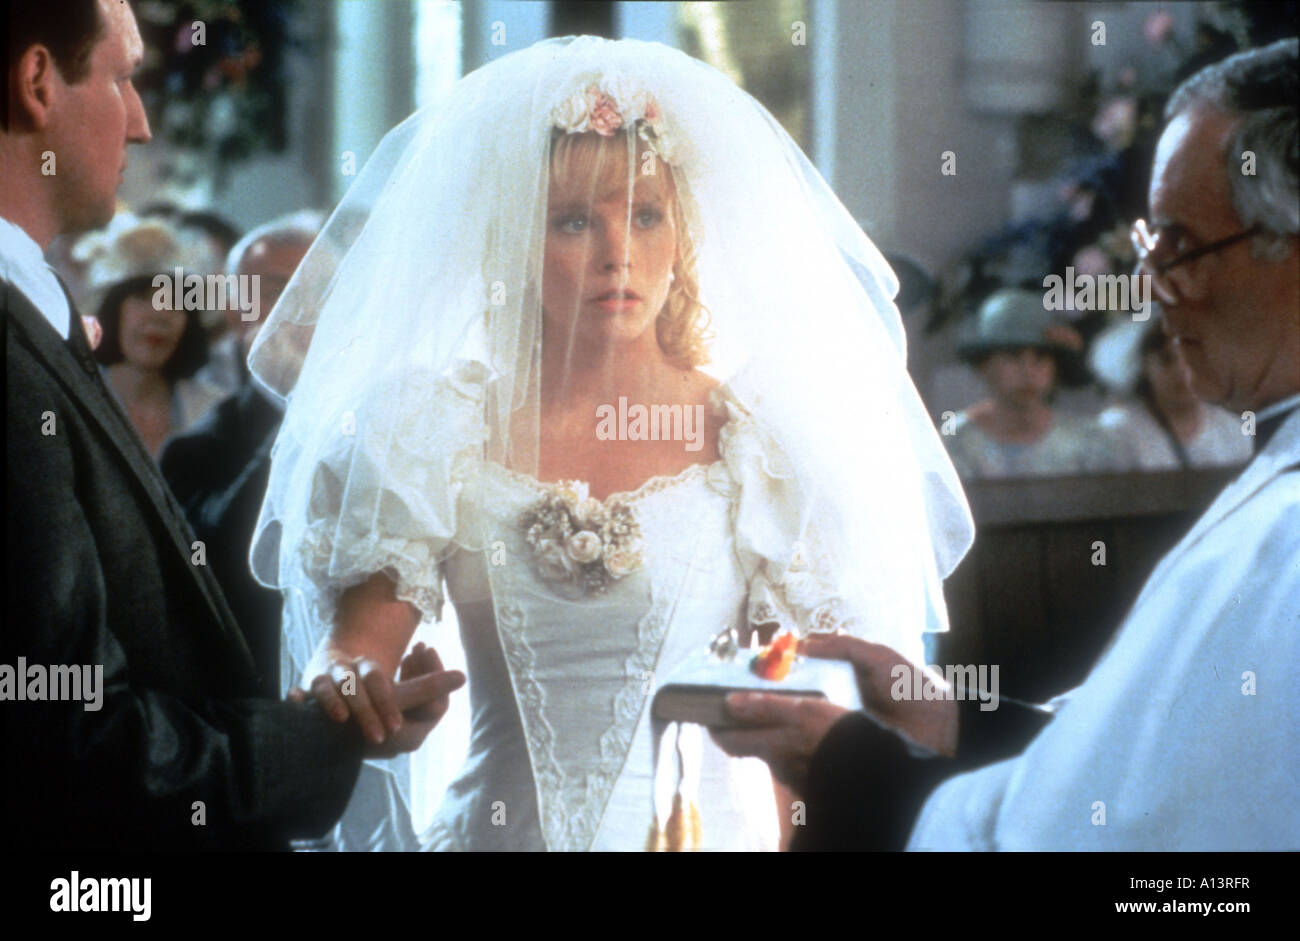 Four Weddings And A Funeral Year 1994 Director Mike Newell Stock